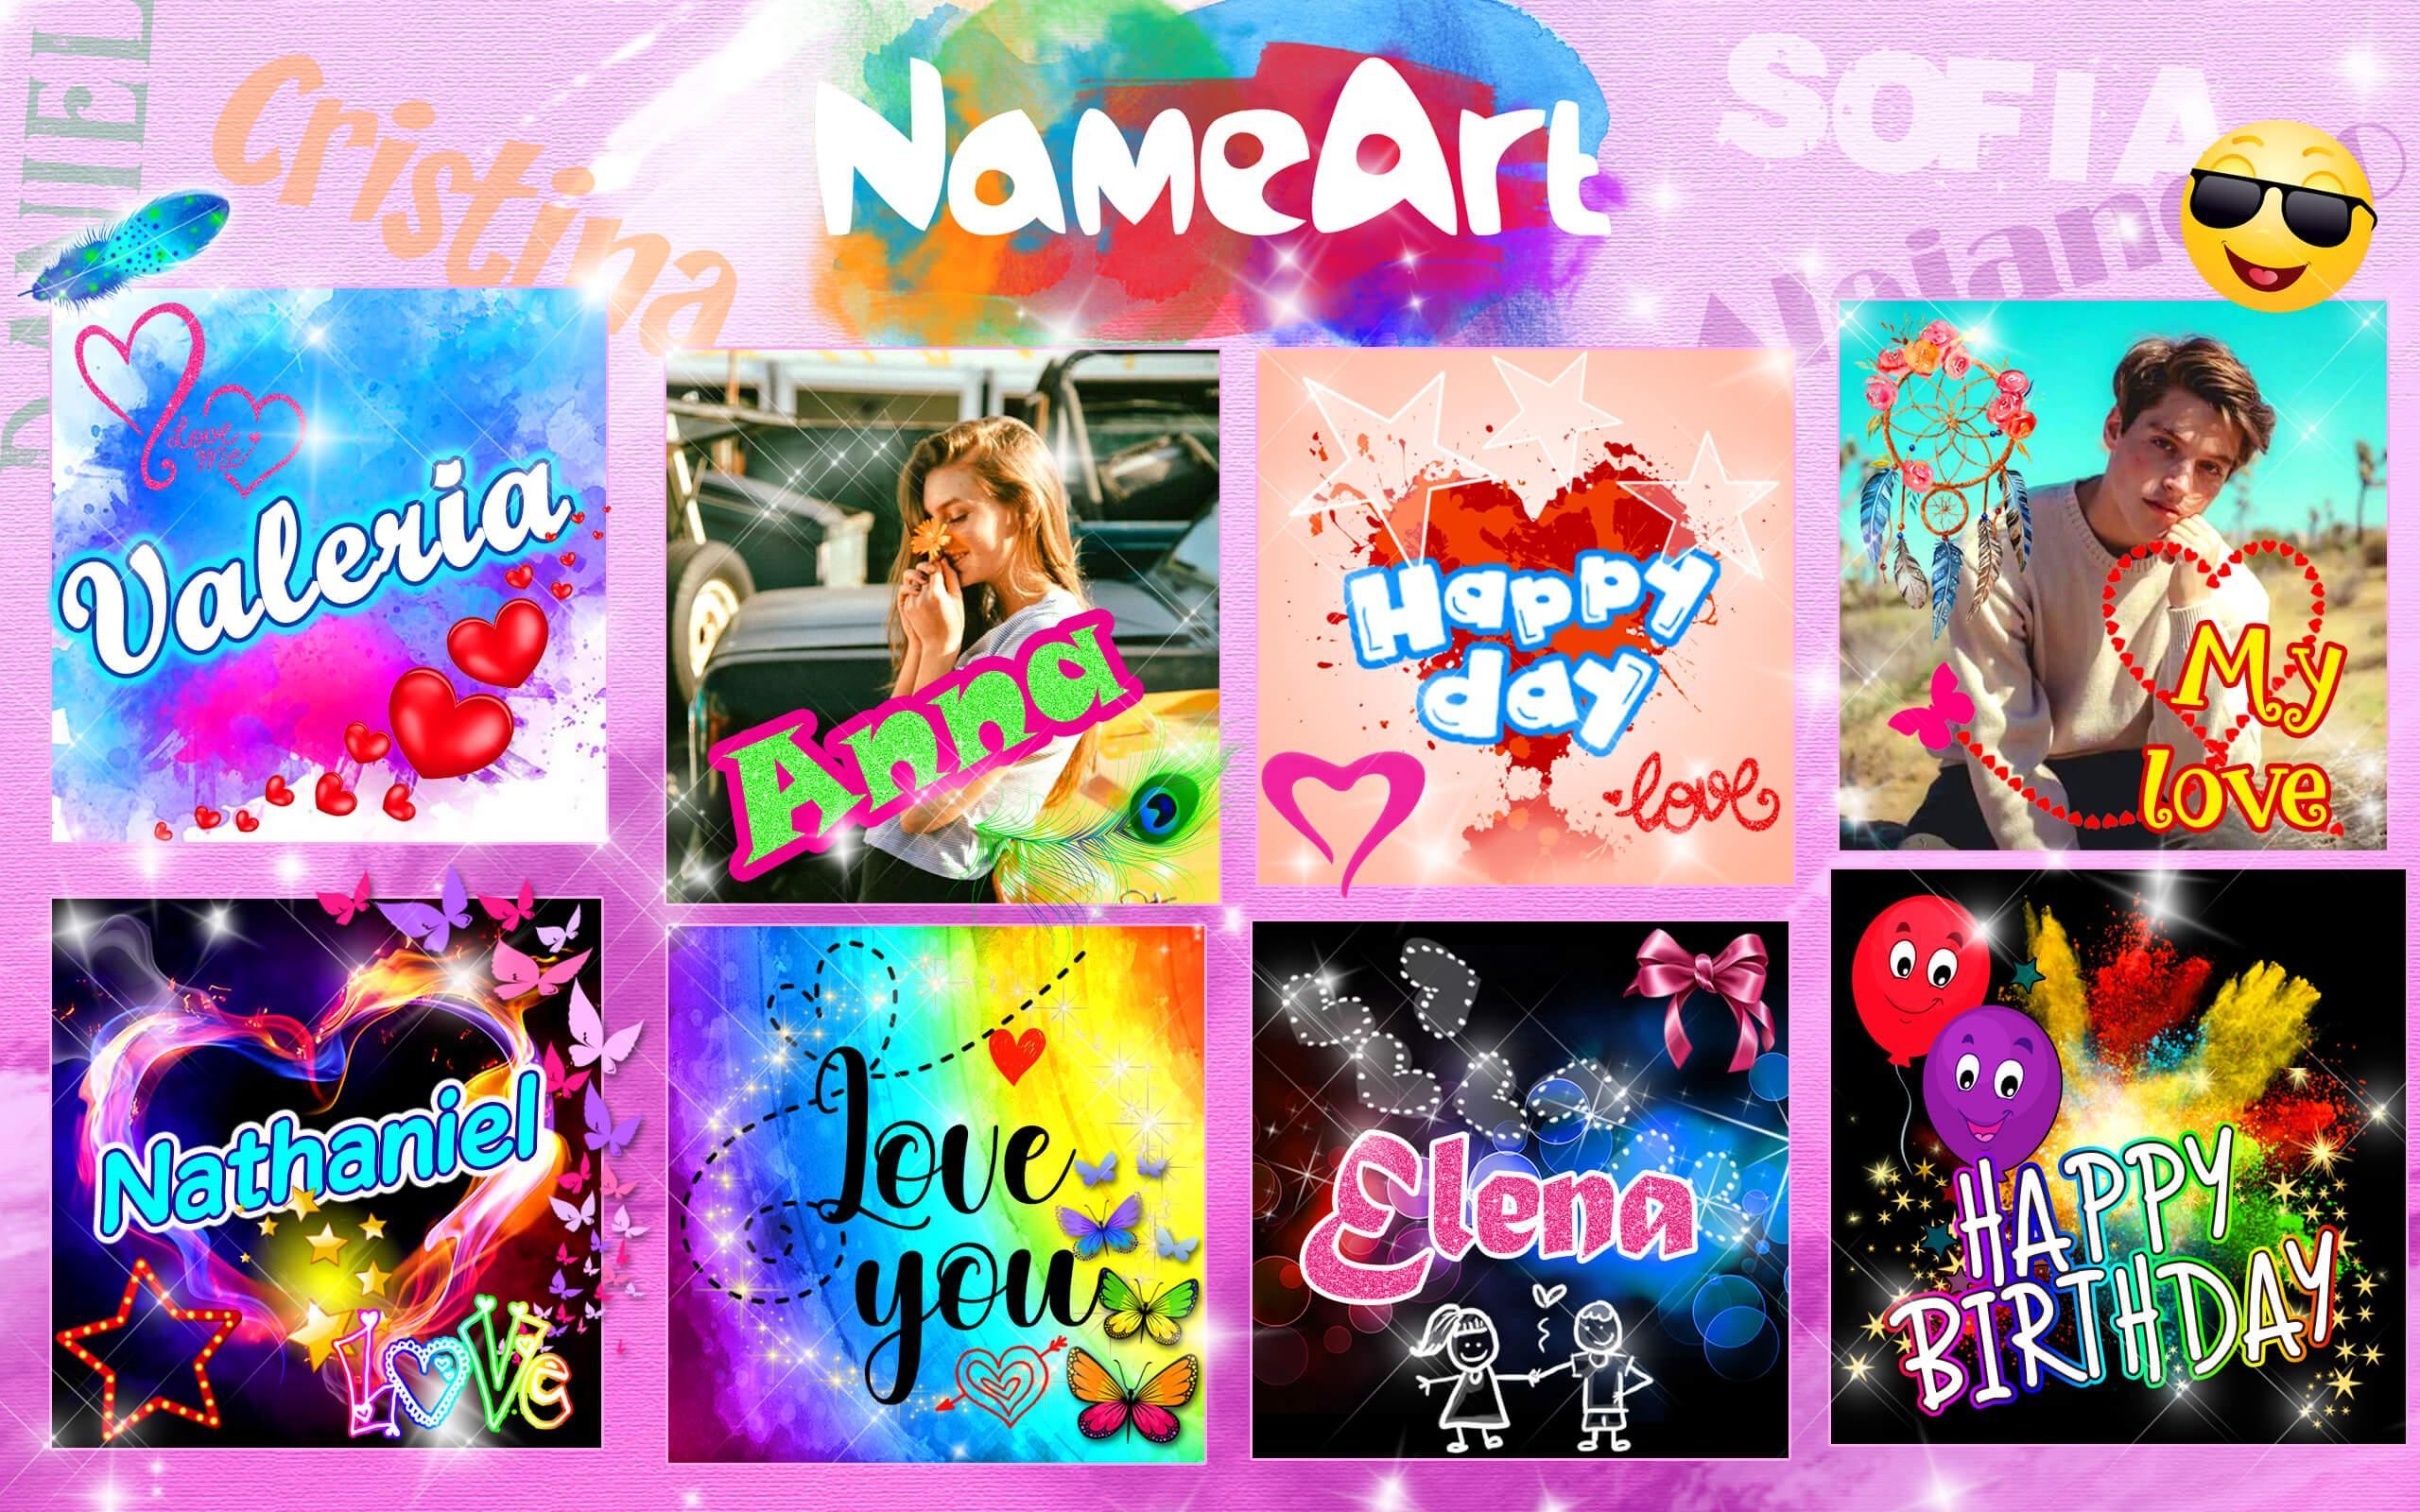 Name Art Maker for Android - APK Download